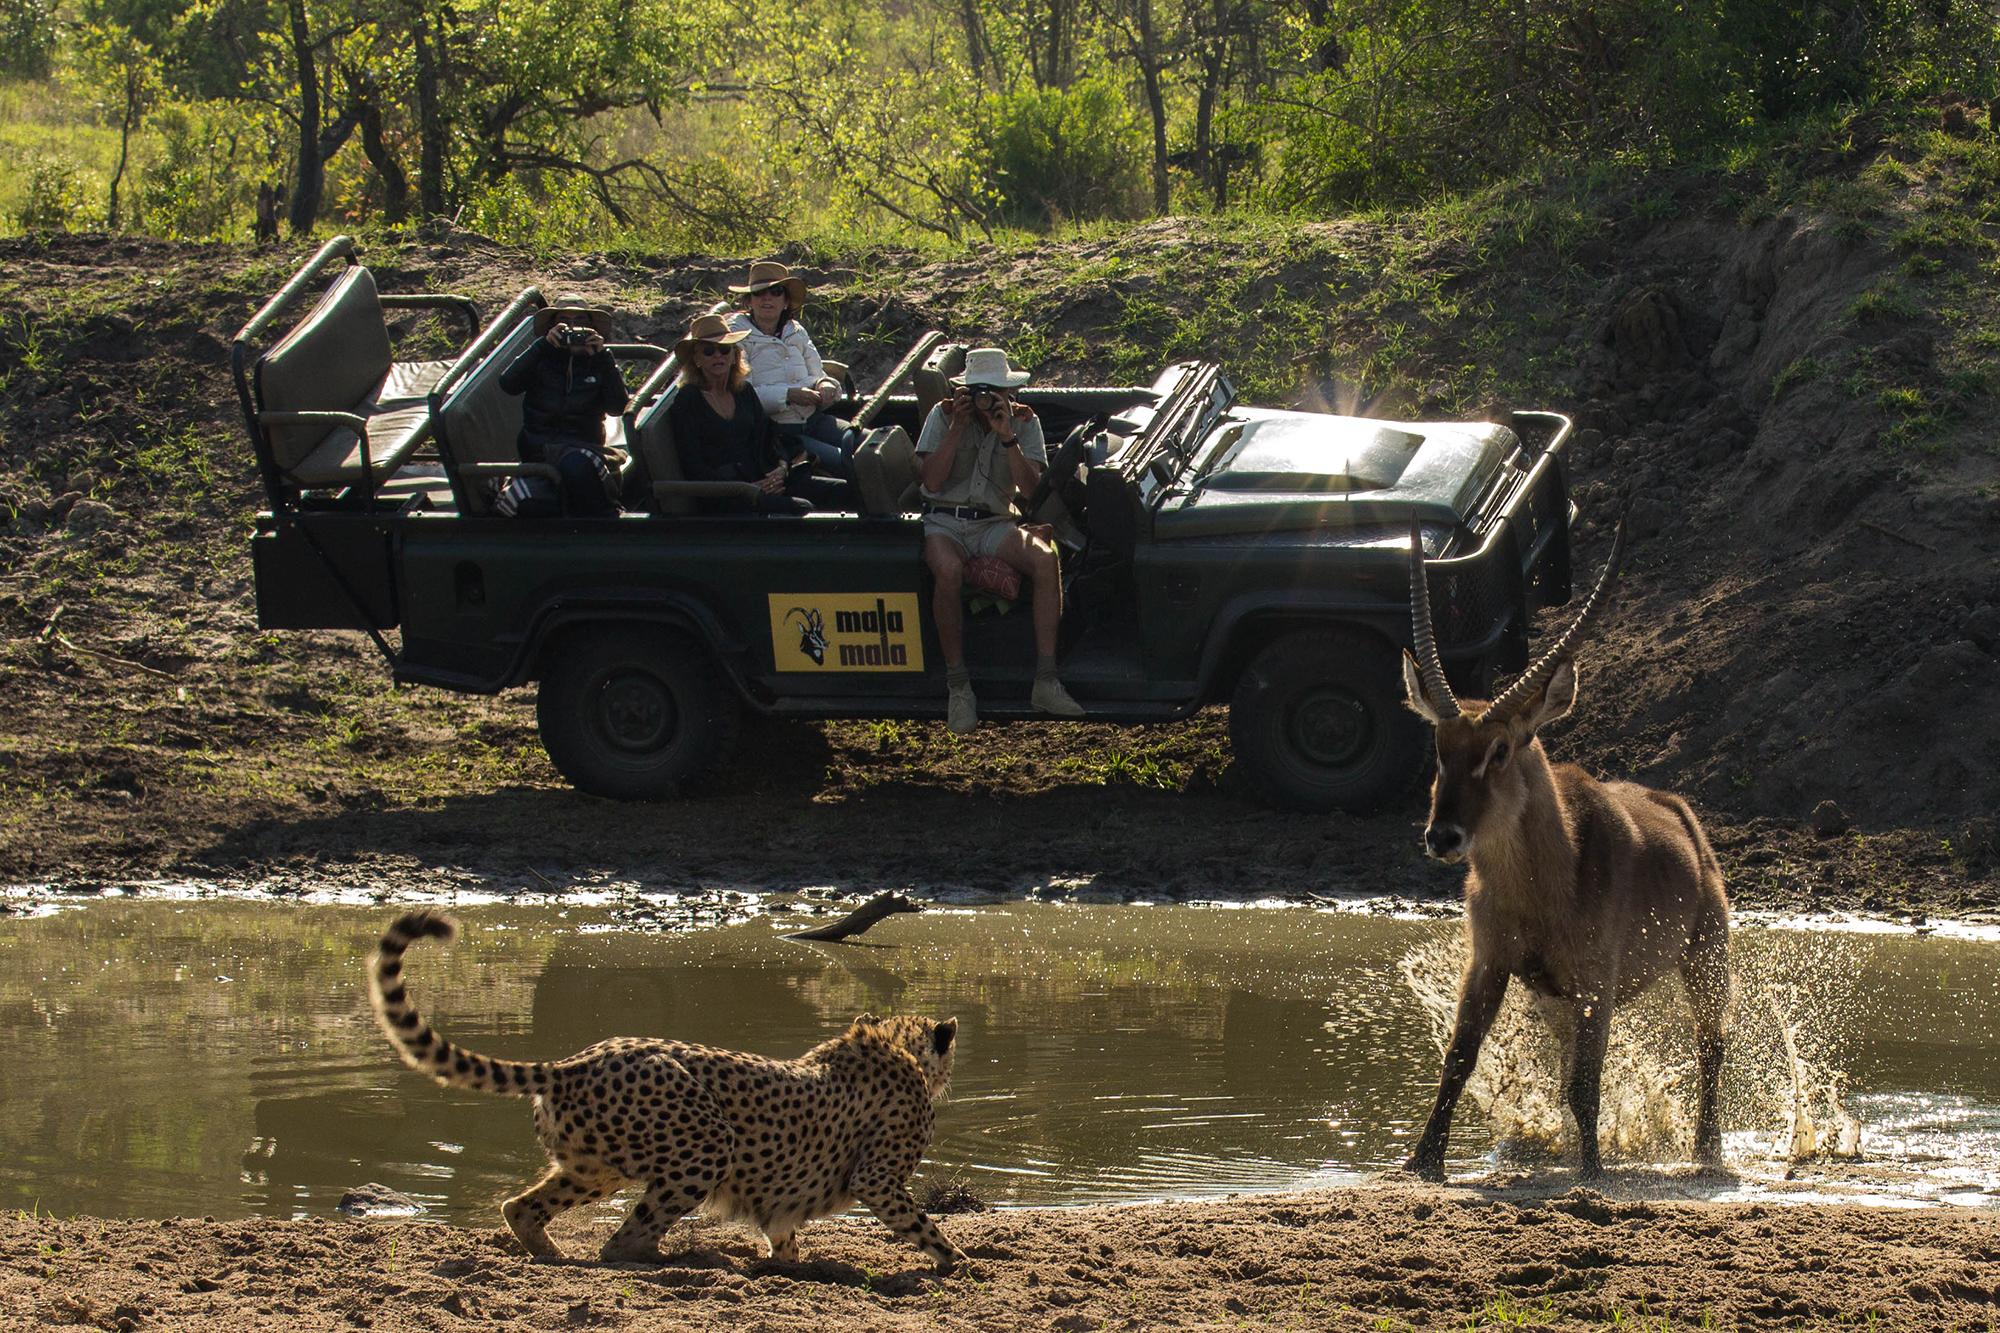 a stand off between a cheetah and a male waterbuck at MalaMala game reserve being observed by guests in a safari vehicle in the background